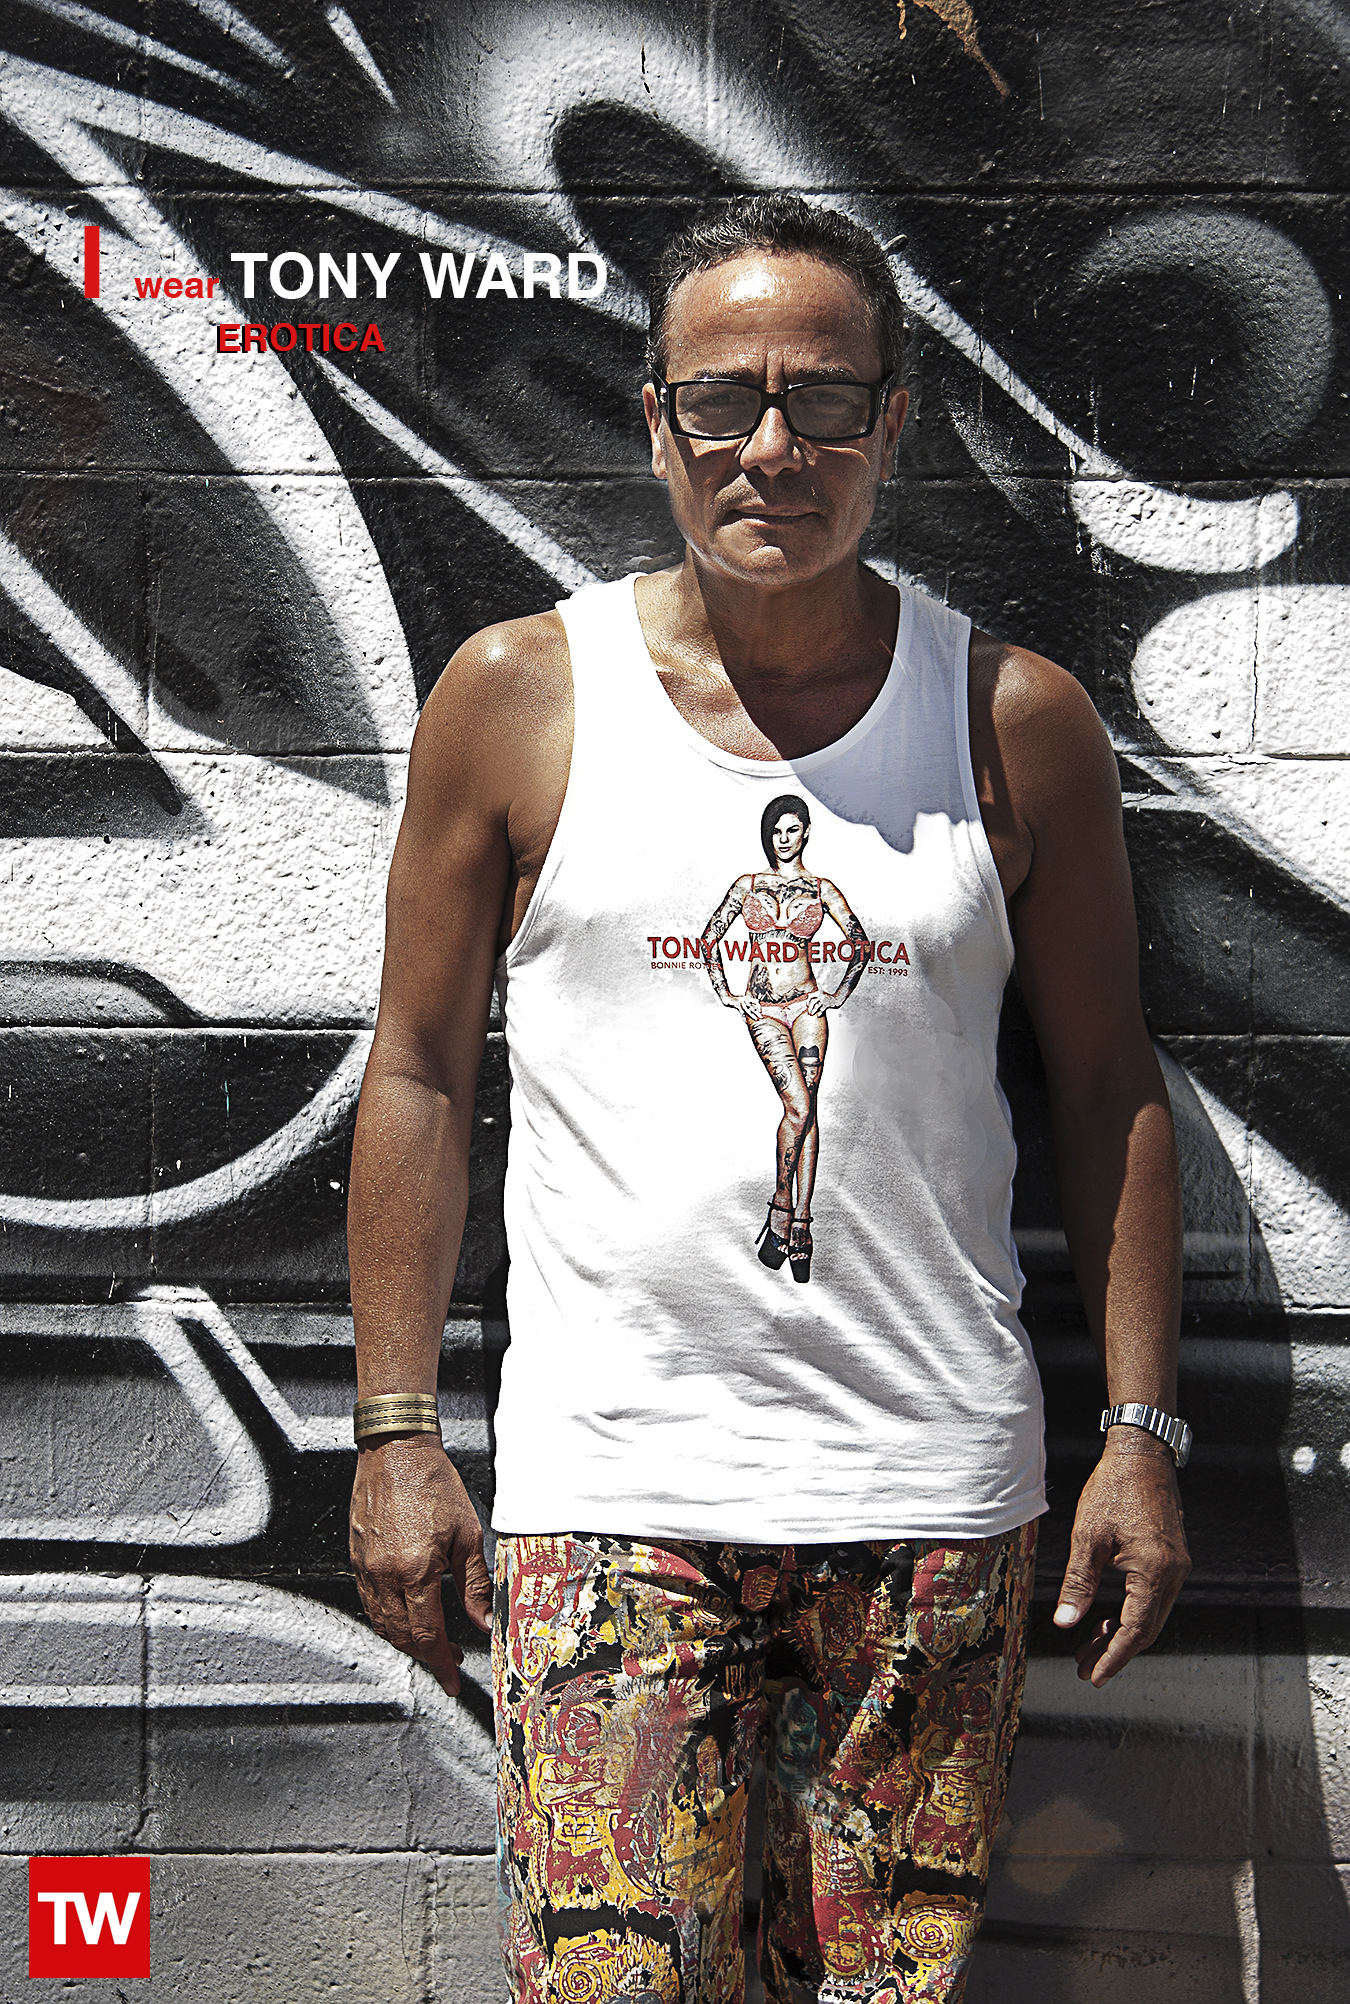 Tony_Ward_Erotica_T-shirts_white_tank_Bonnie_Rotten_store_